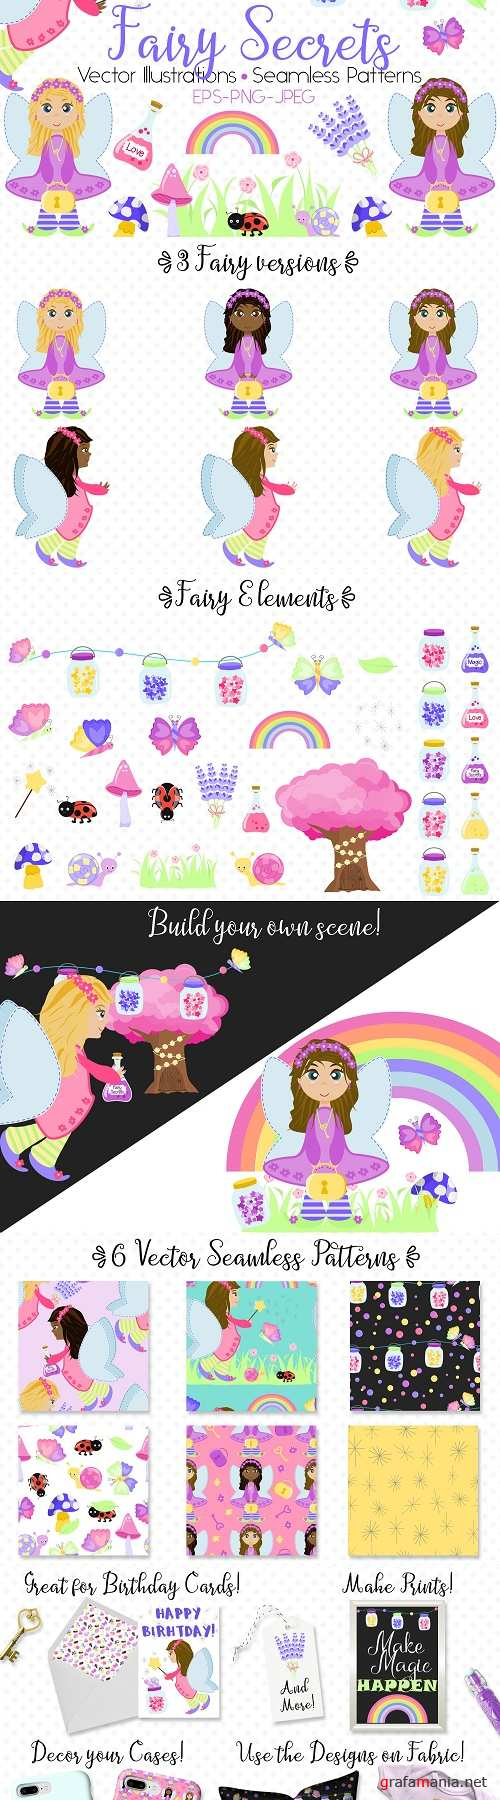 Fairy Secrets - Graphics and Patterns